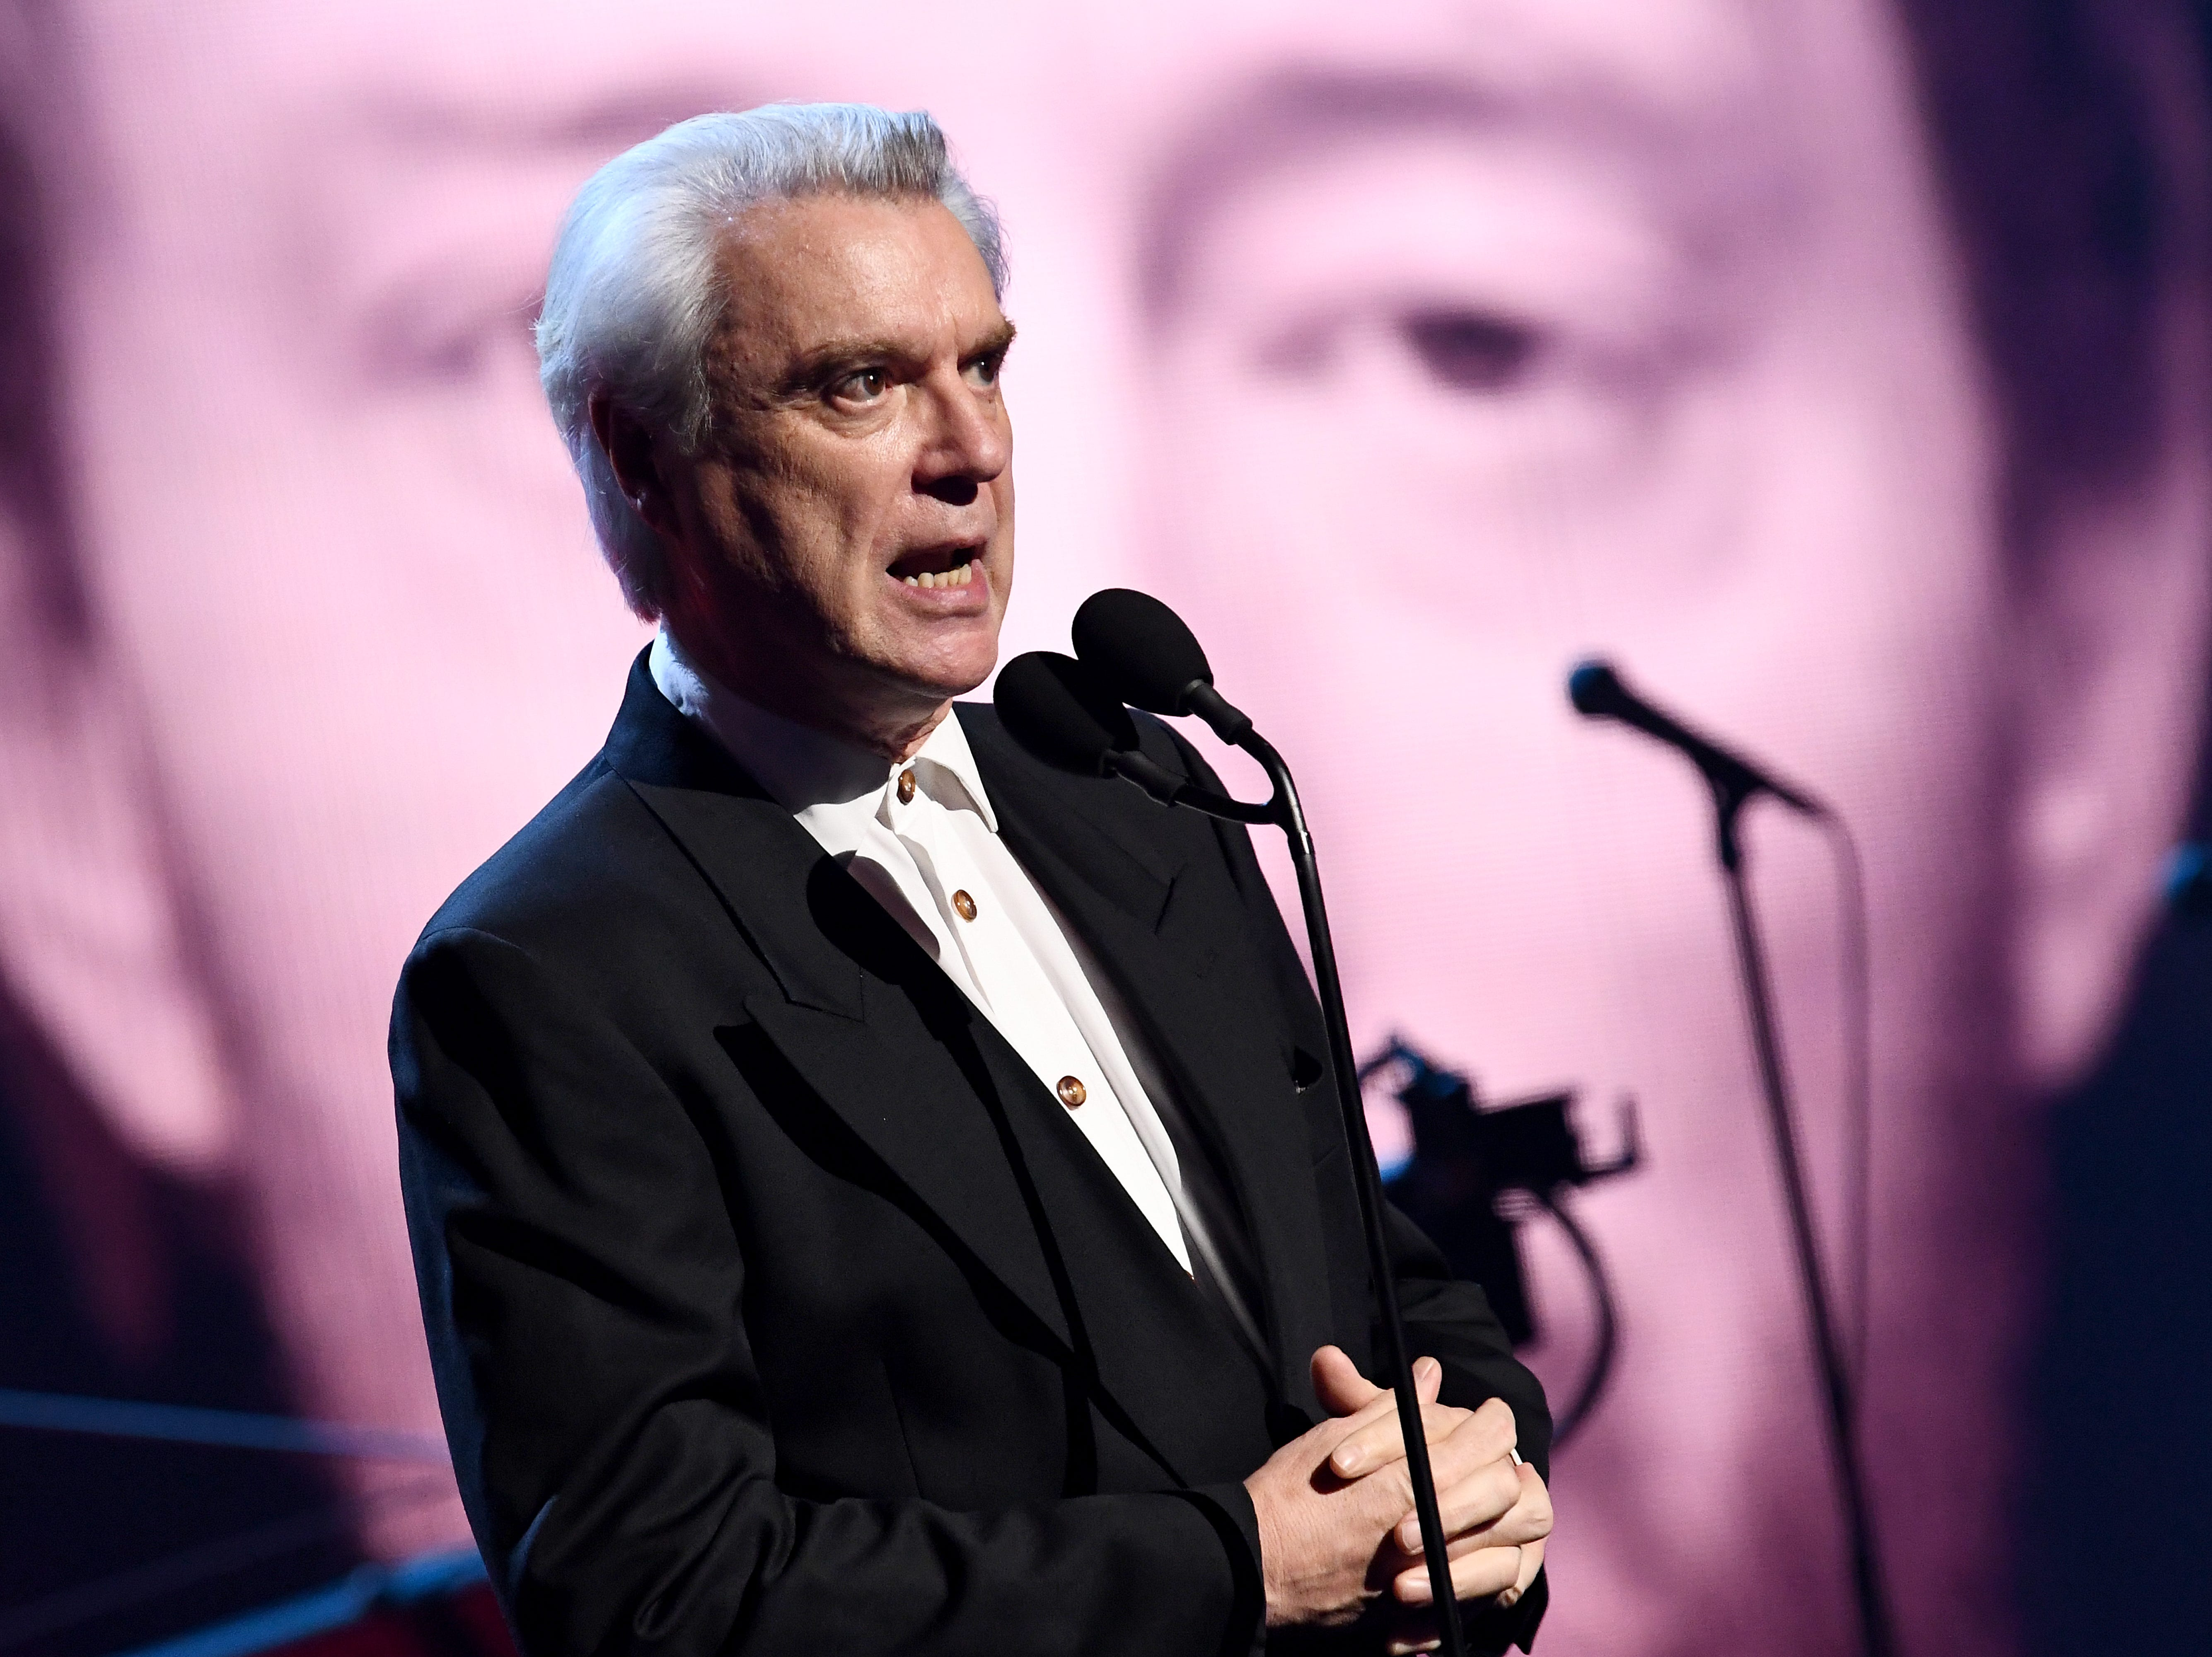 Talking Heads frontman David Byrne introduces Radiohead.